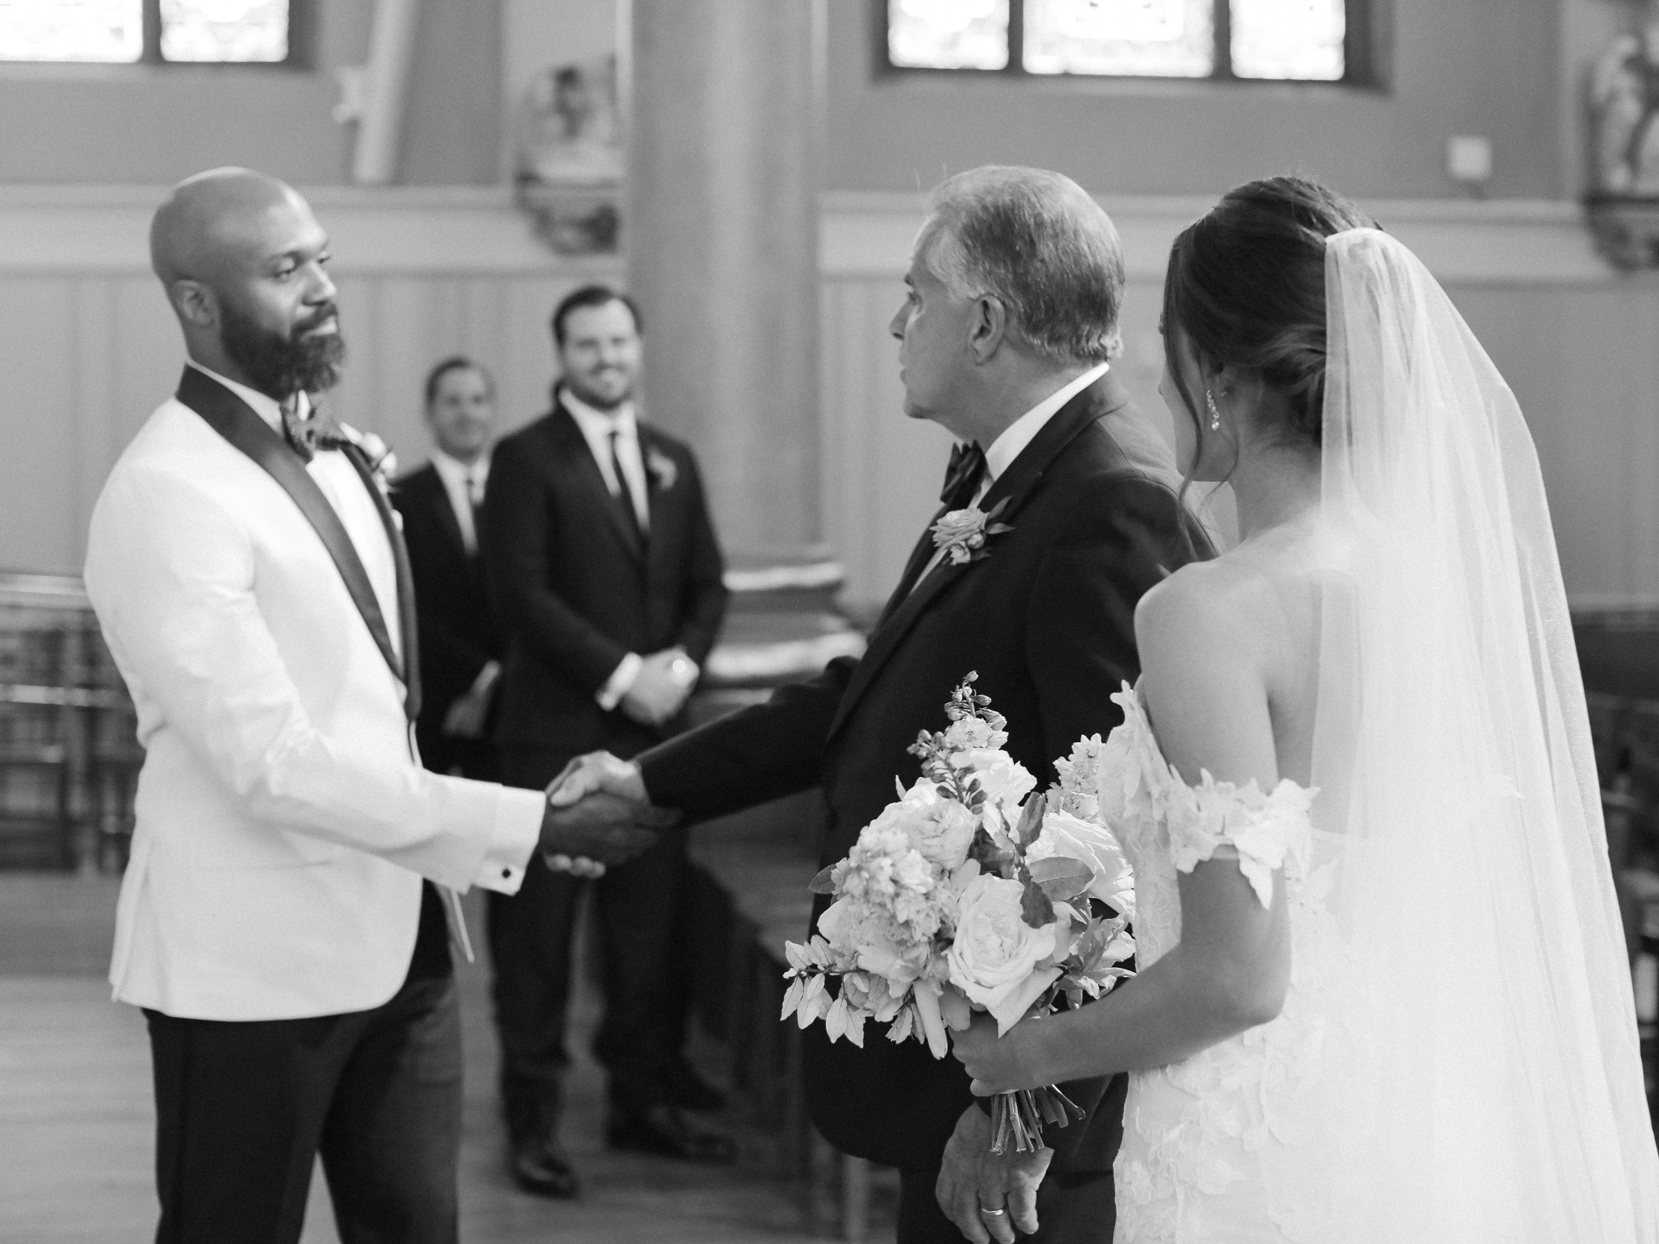 groom shaking hands with bride's father